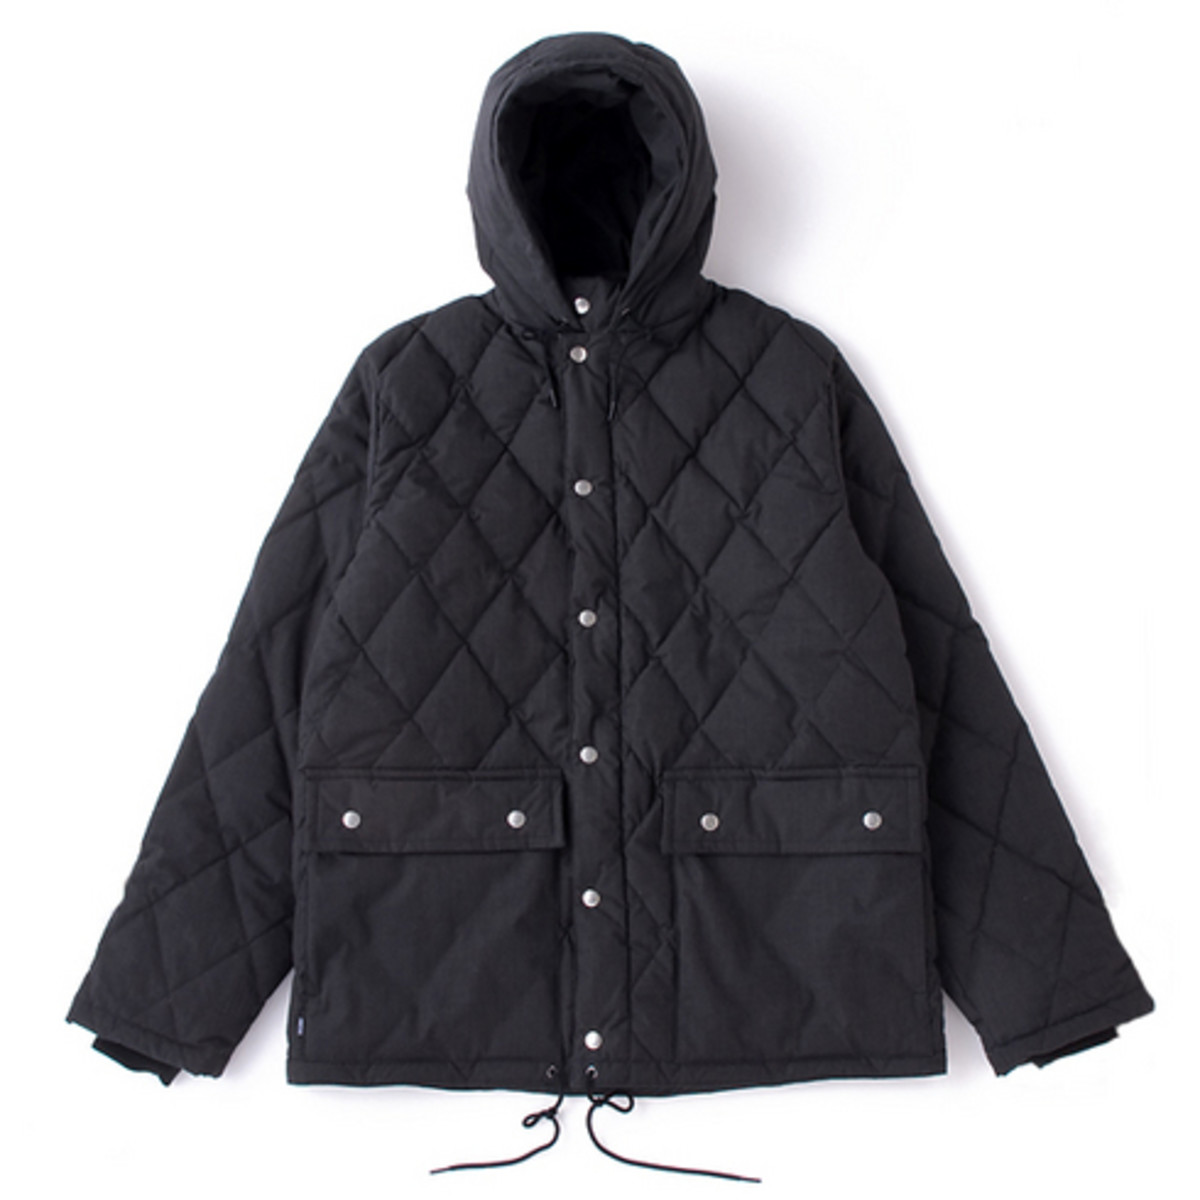 quilting-jacket-black